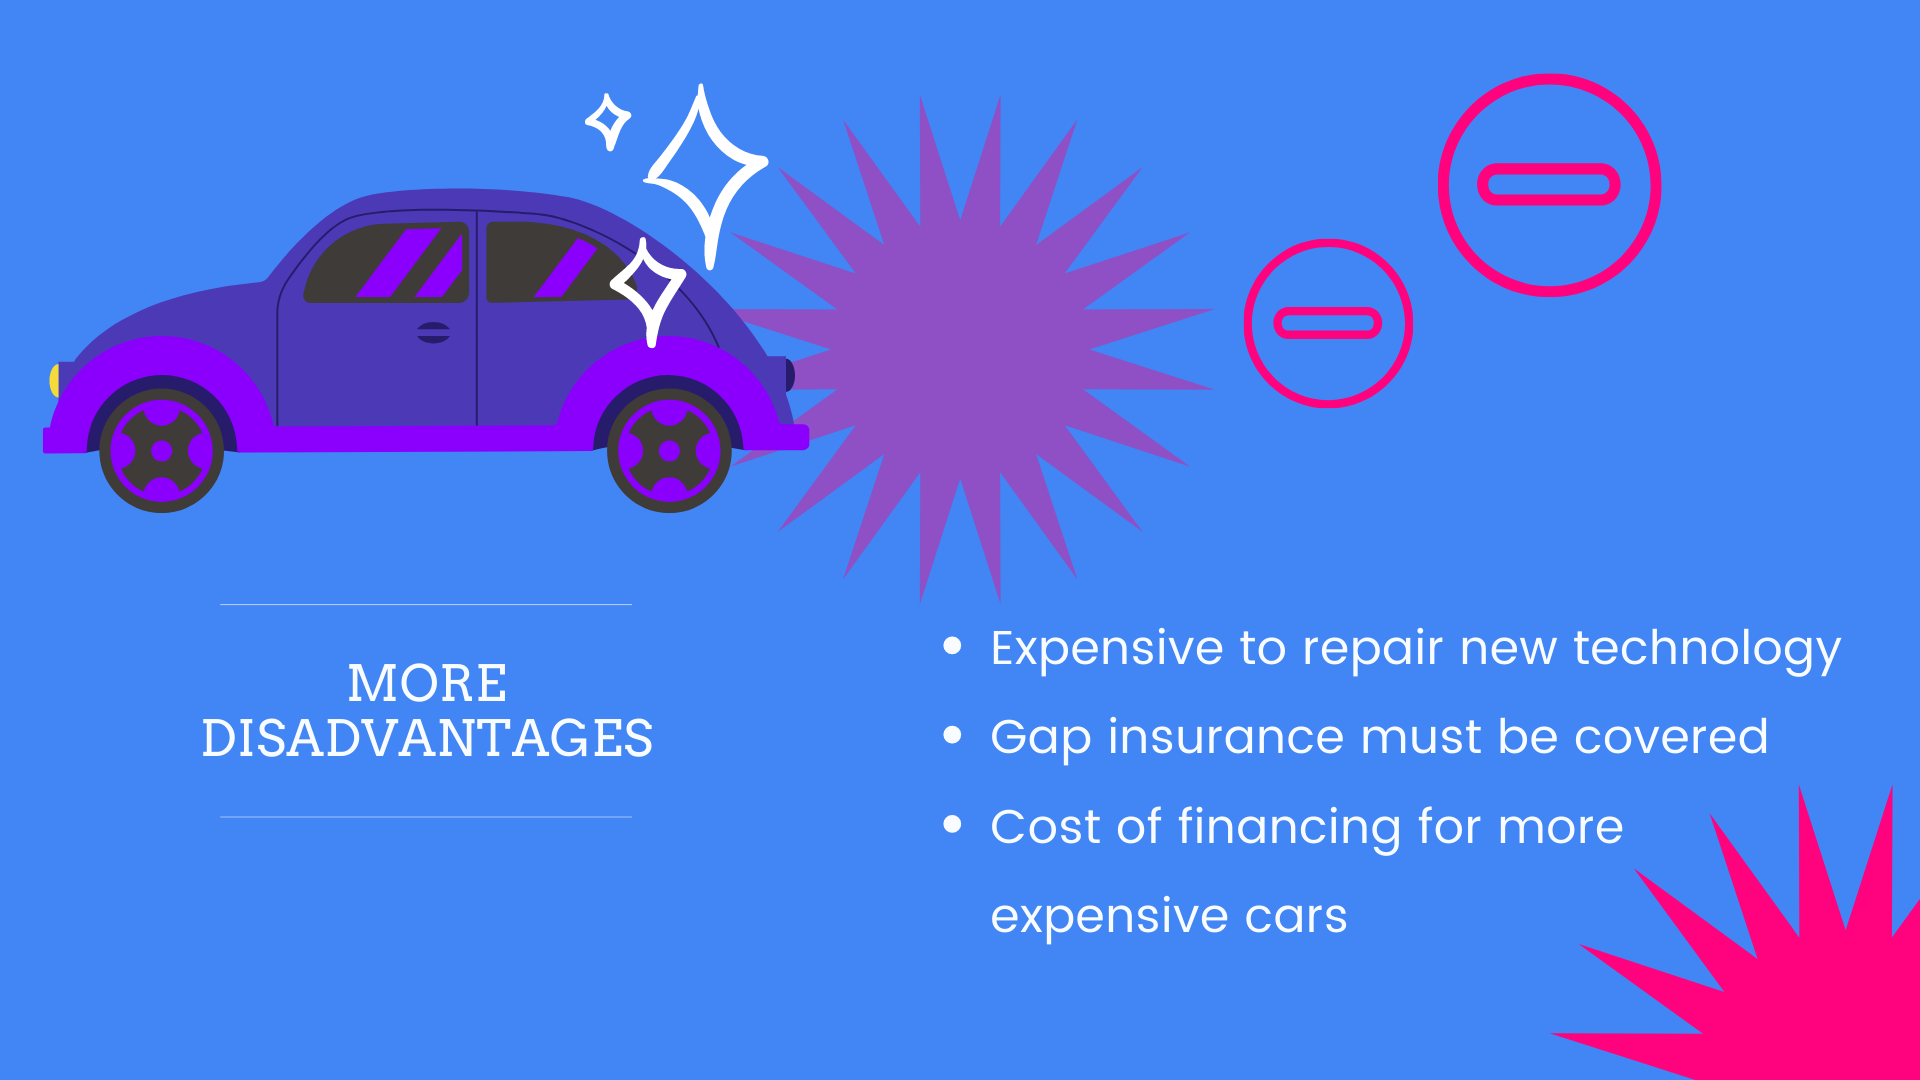 3: Expensive to repair new technology. 4: Gap insurance must be covered. 5: Cost of financing for more expensive cars.